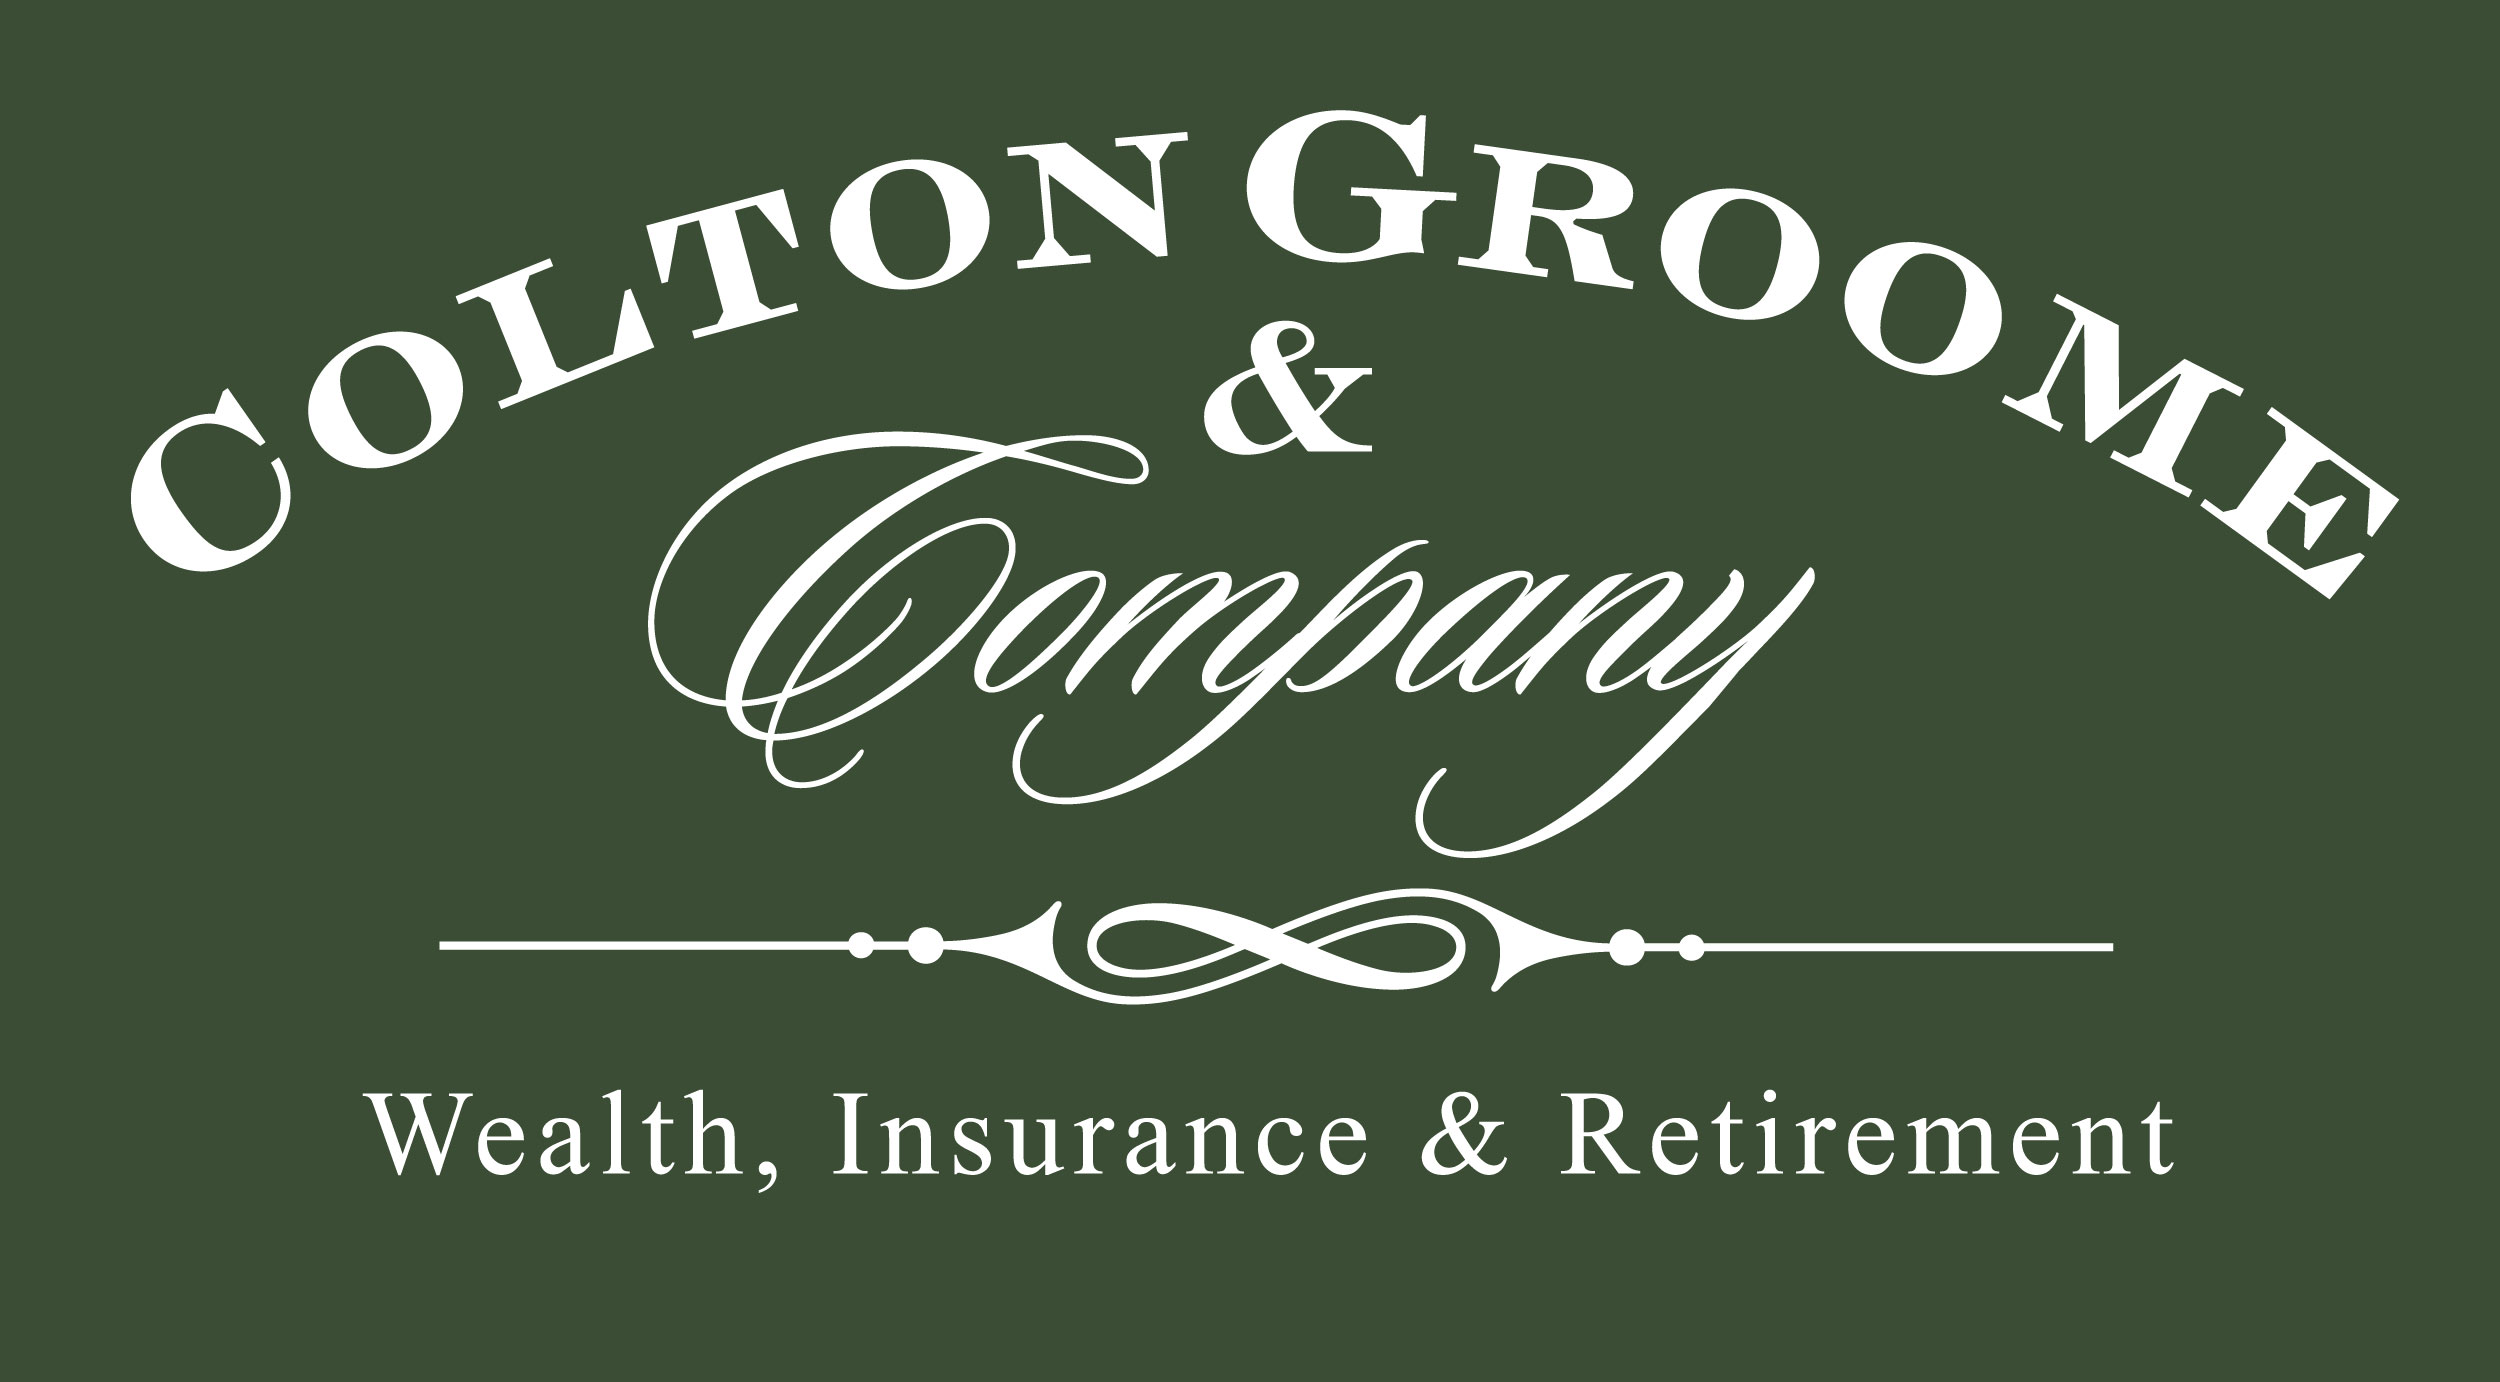 LOGO Colton Groome & Company: Wealth, Insurance & Retirement